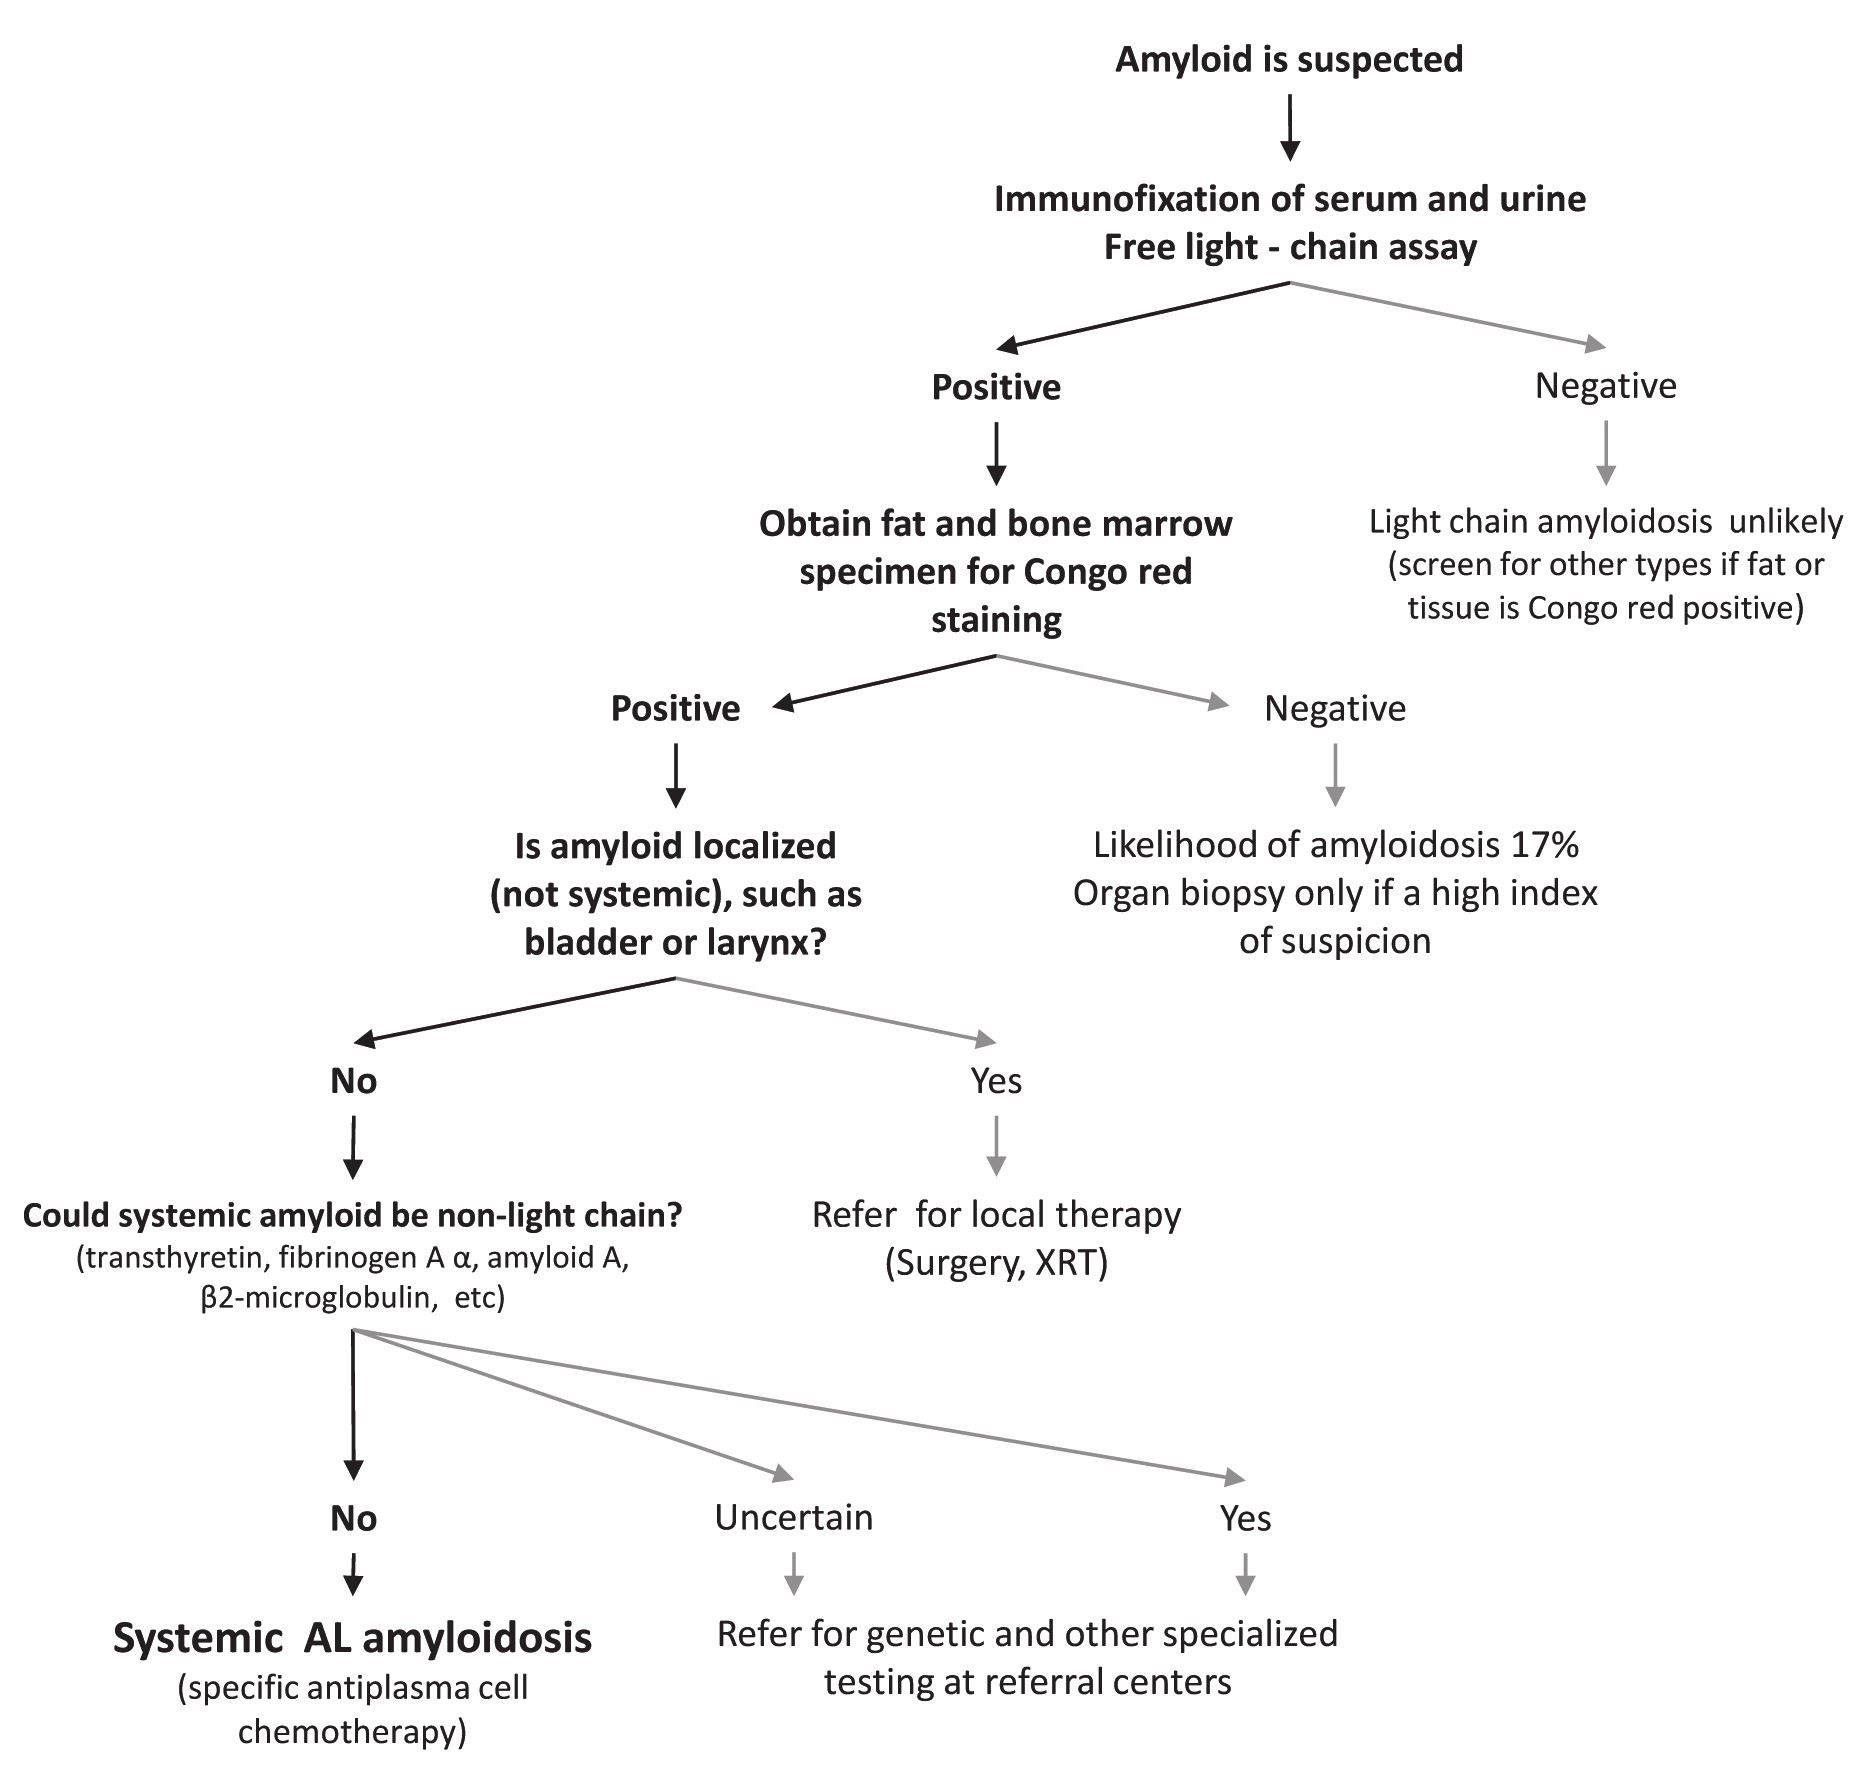 Fig. 1. Algorithm for evaluating patients with suspected amyloidosis [5] XRT – X-ray therapy